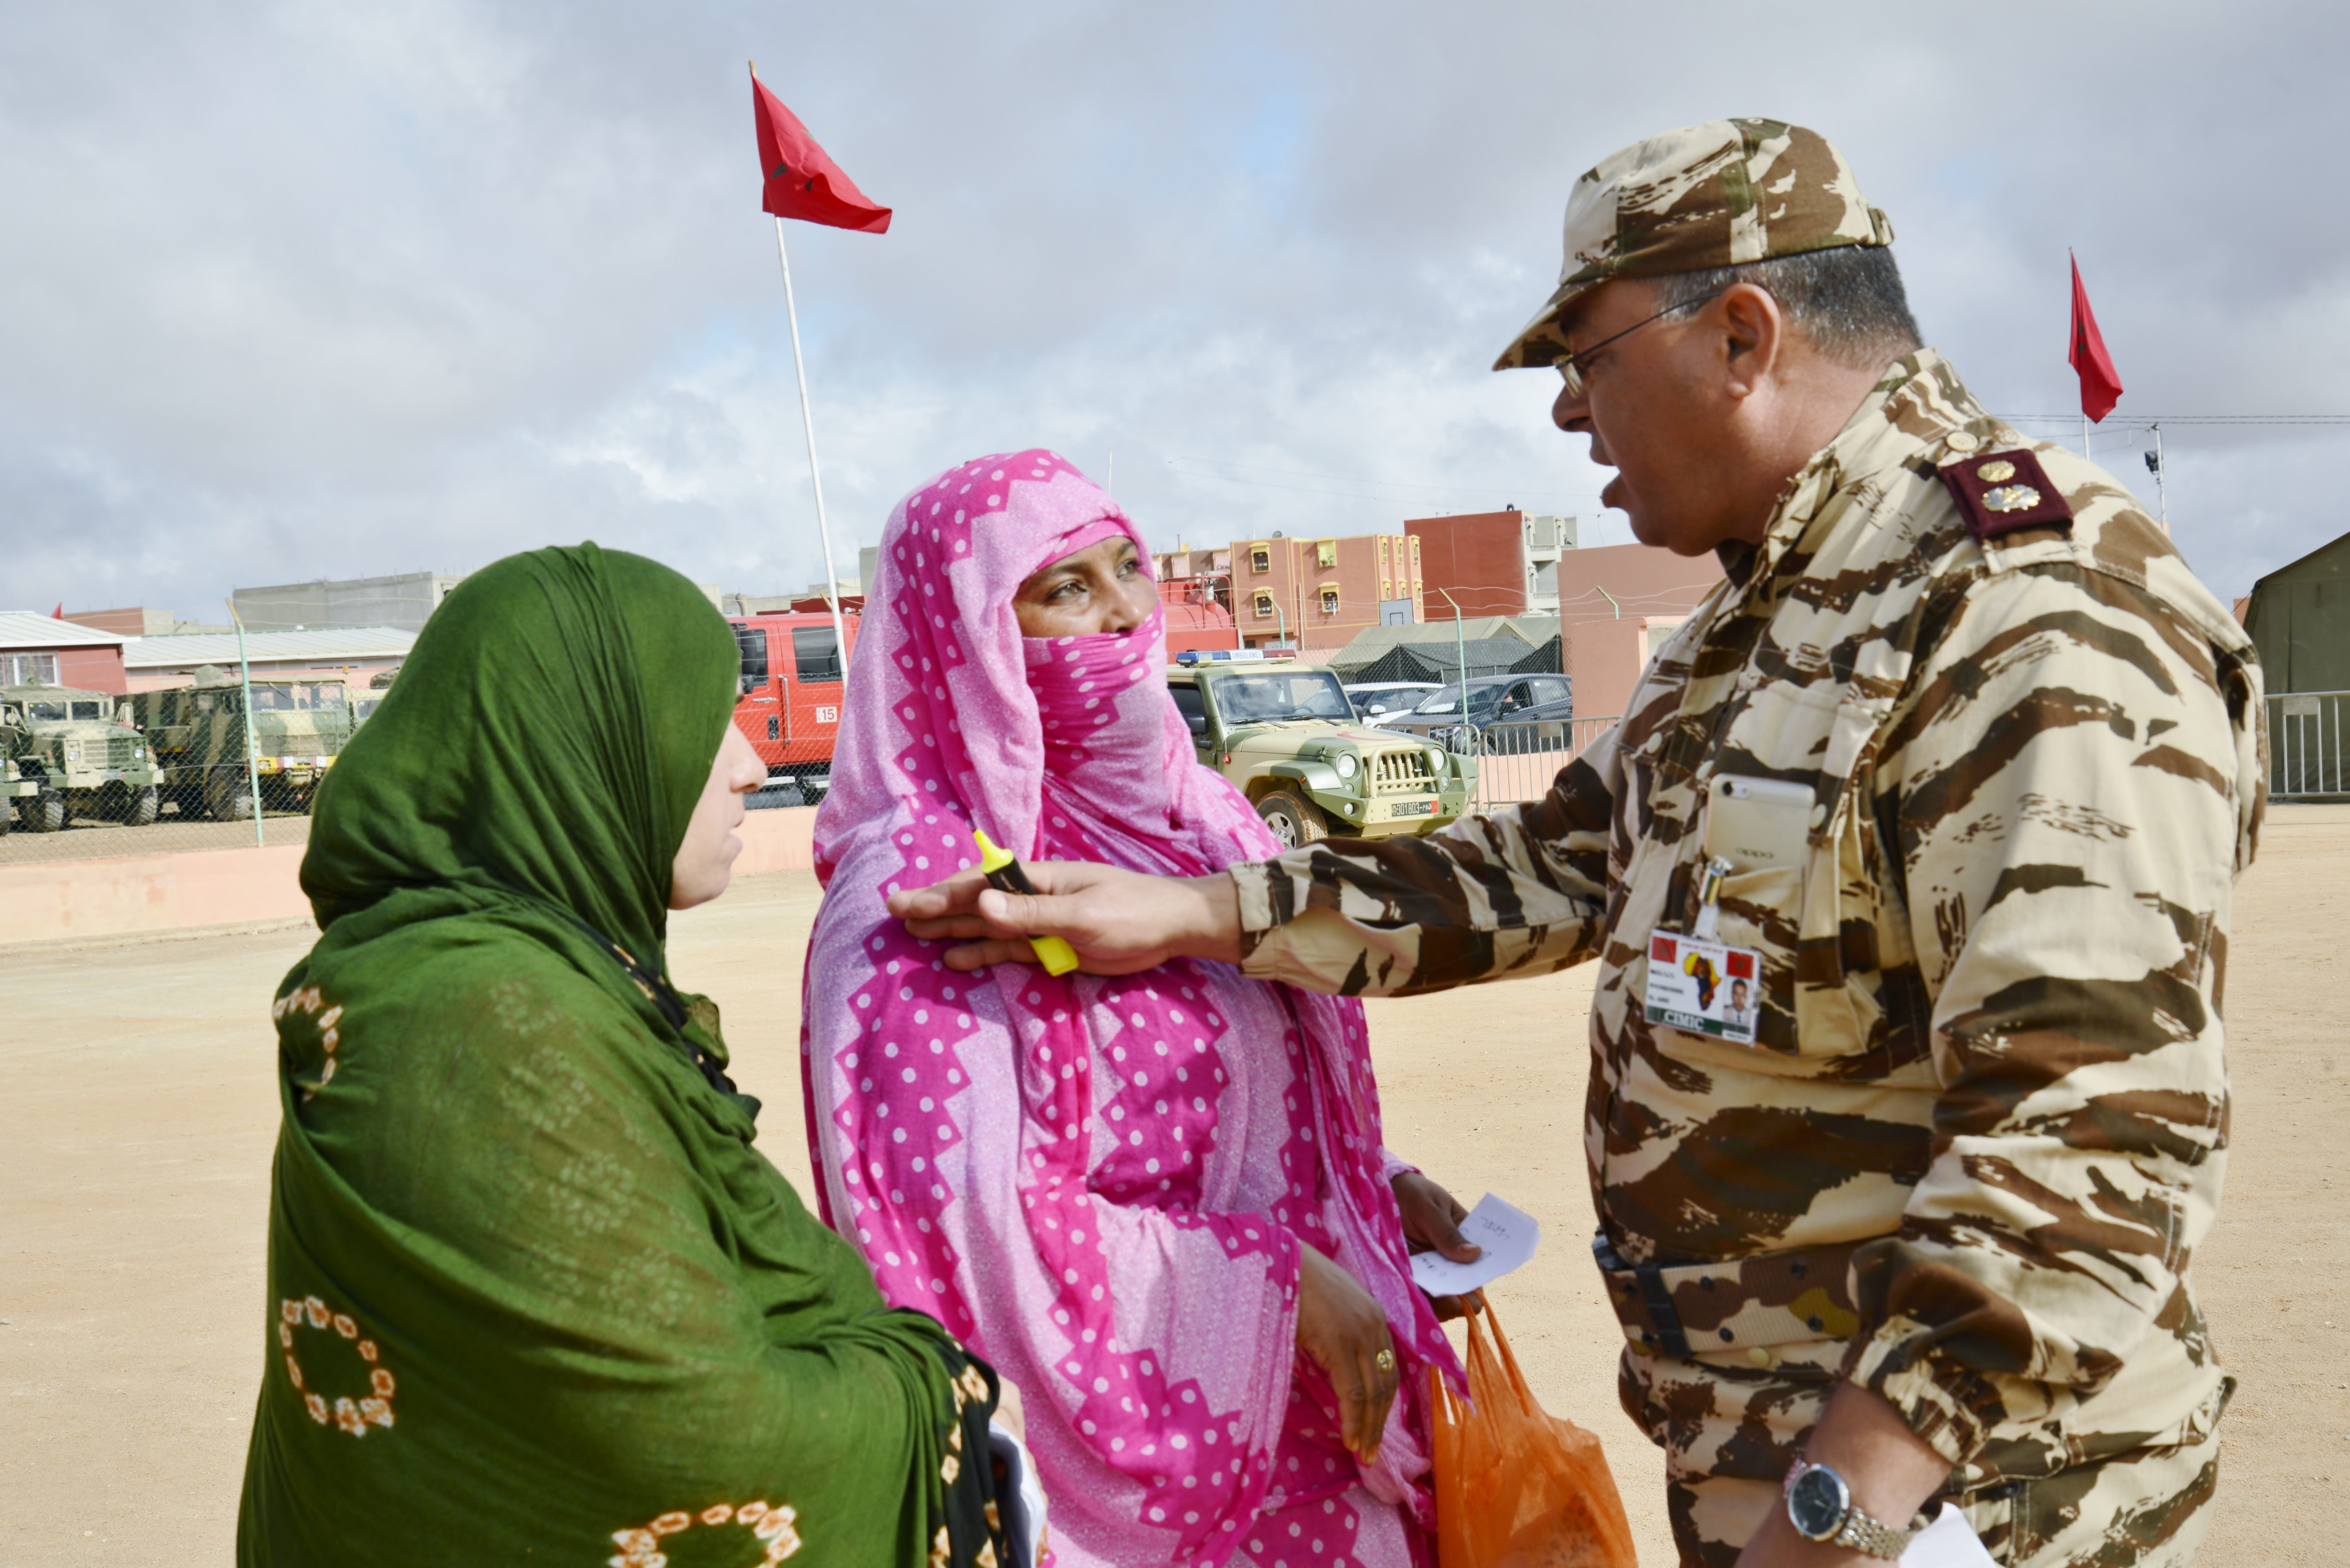 A member of Moroccan Royal Armed Forces assists two women during the Humanitarian Civic Assistance component of Exercise African Lion 2018 in Bounaamane, Morocco, April 24, 2018.  Exercise African Lion 2018 is a Chairman of the Joint Chiefs of Staff-sponsored, U.S. African Command-scheduled, U.S. Marine Corps Forces Europe and Africa-led, joint and combined exercise conducted in the Kingdom of Morocco. African Lion offers an opportunity to improve interoperability and cooperation while demonstrating the strong military bond that exists between the participating nations. (U.S. Army National Guard photo by Maj. Samantha Madsen)